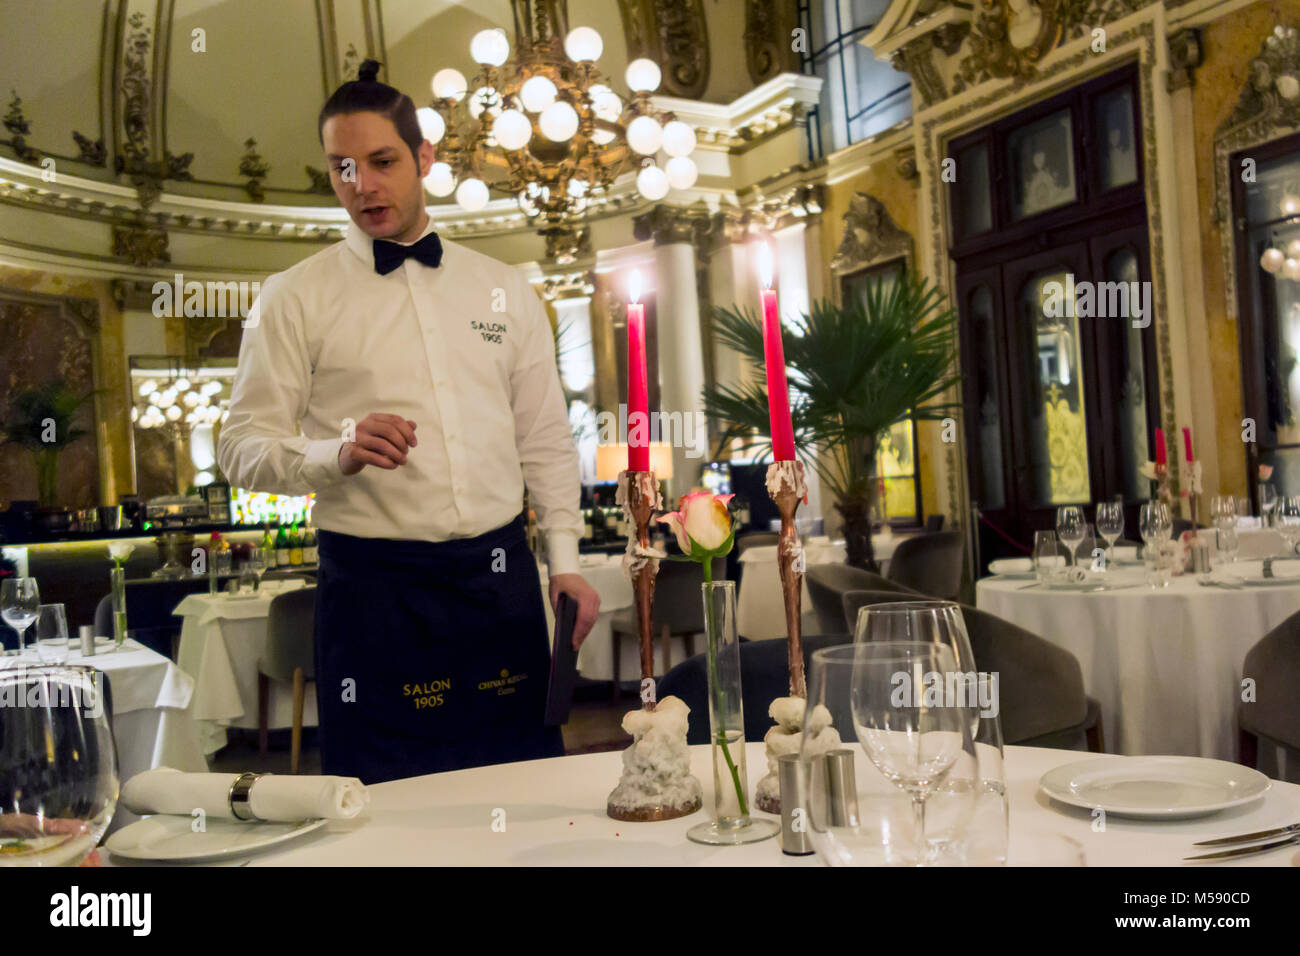 Interior of  the Salon 1905, a gourmet restaurant in Belgrade Serbia Stock Photo